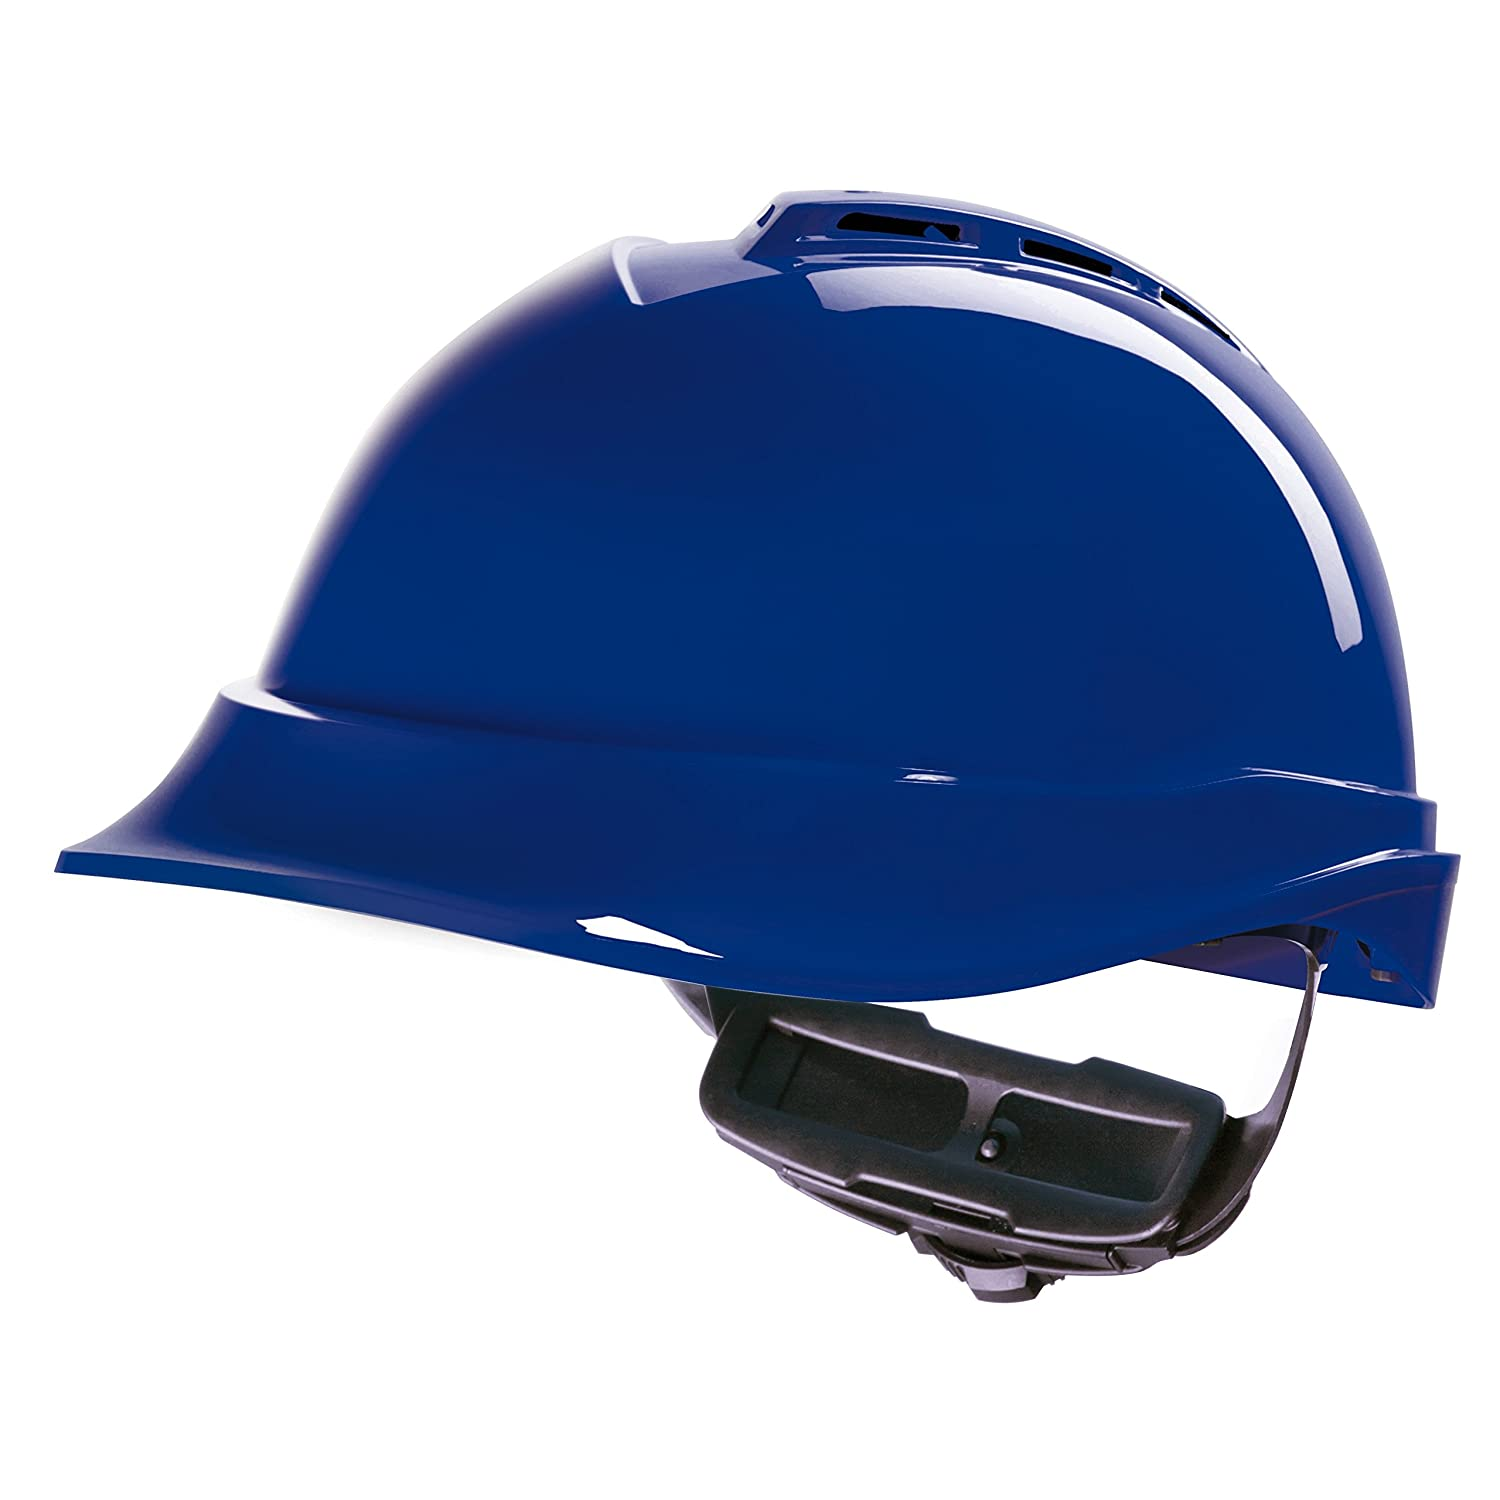 MSA V-Gard 200 Construction Worker Helmet with Ventilation and Rotary Knob  Control FasTrack – Work Helmet Protective Helmet Hard Hat, Colour: Blue